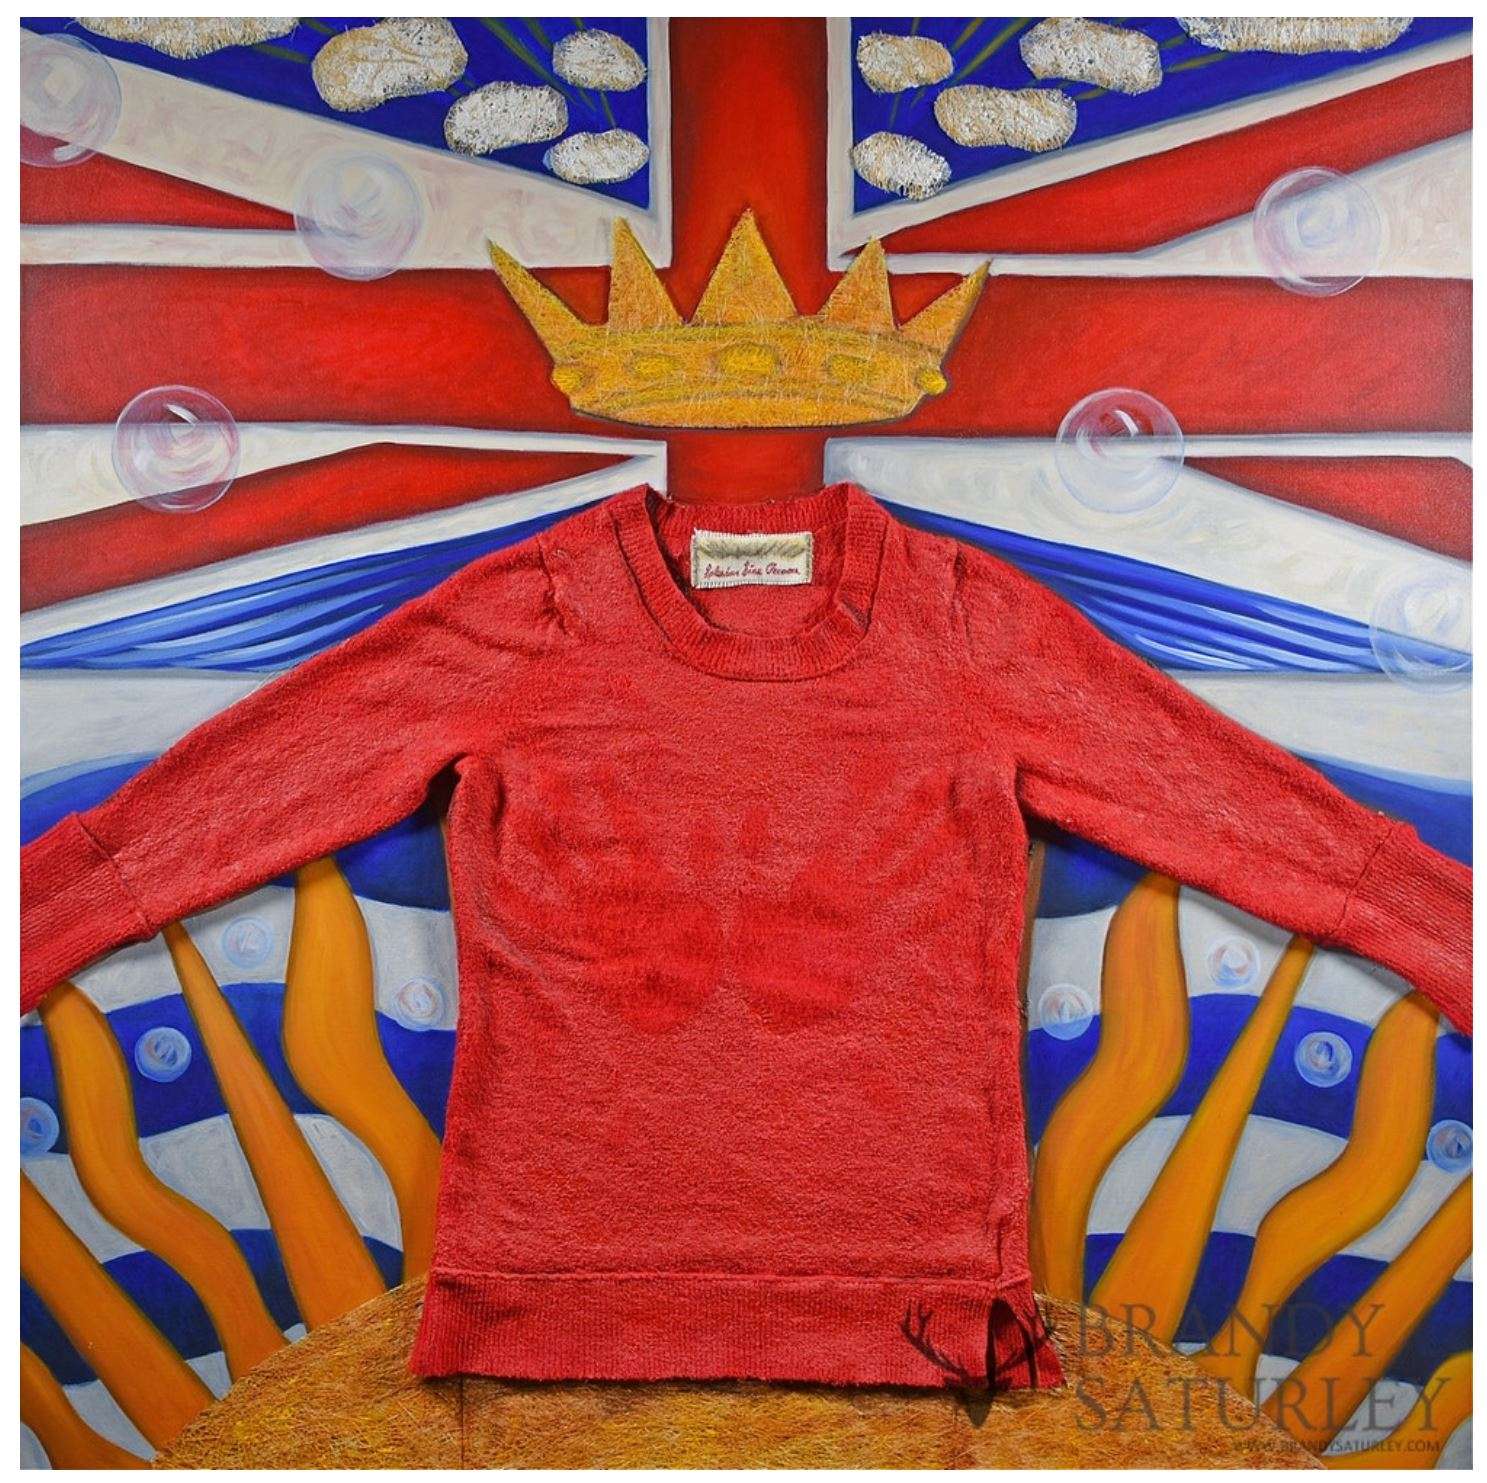 painting with collage of British Columbia flag with red sweater and crown by Brandy Saturley